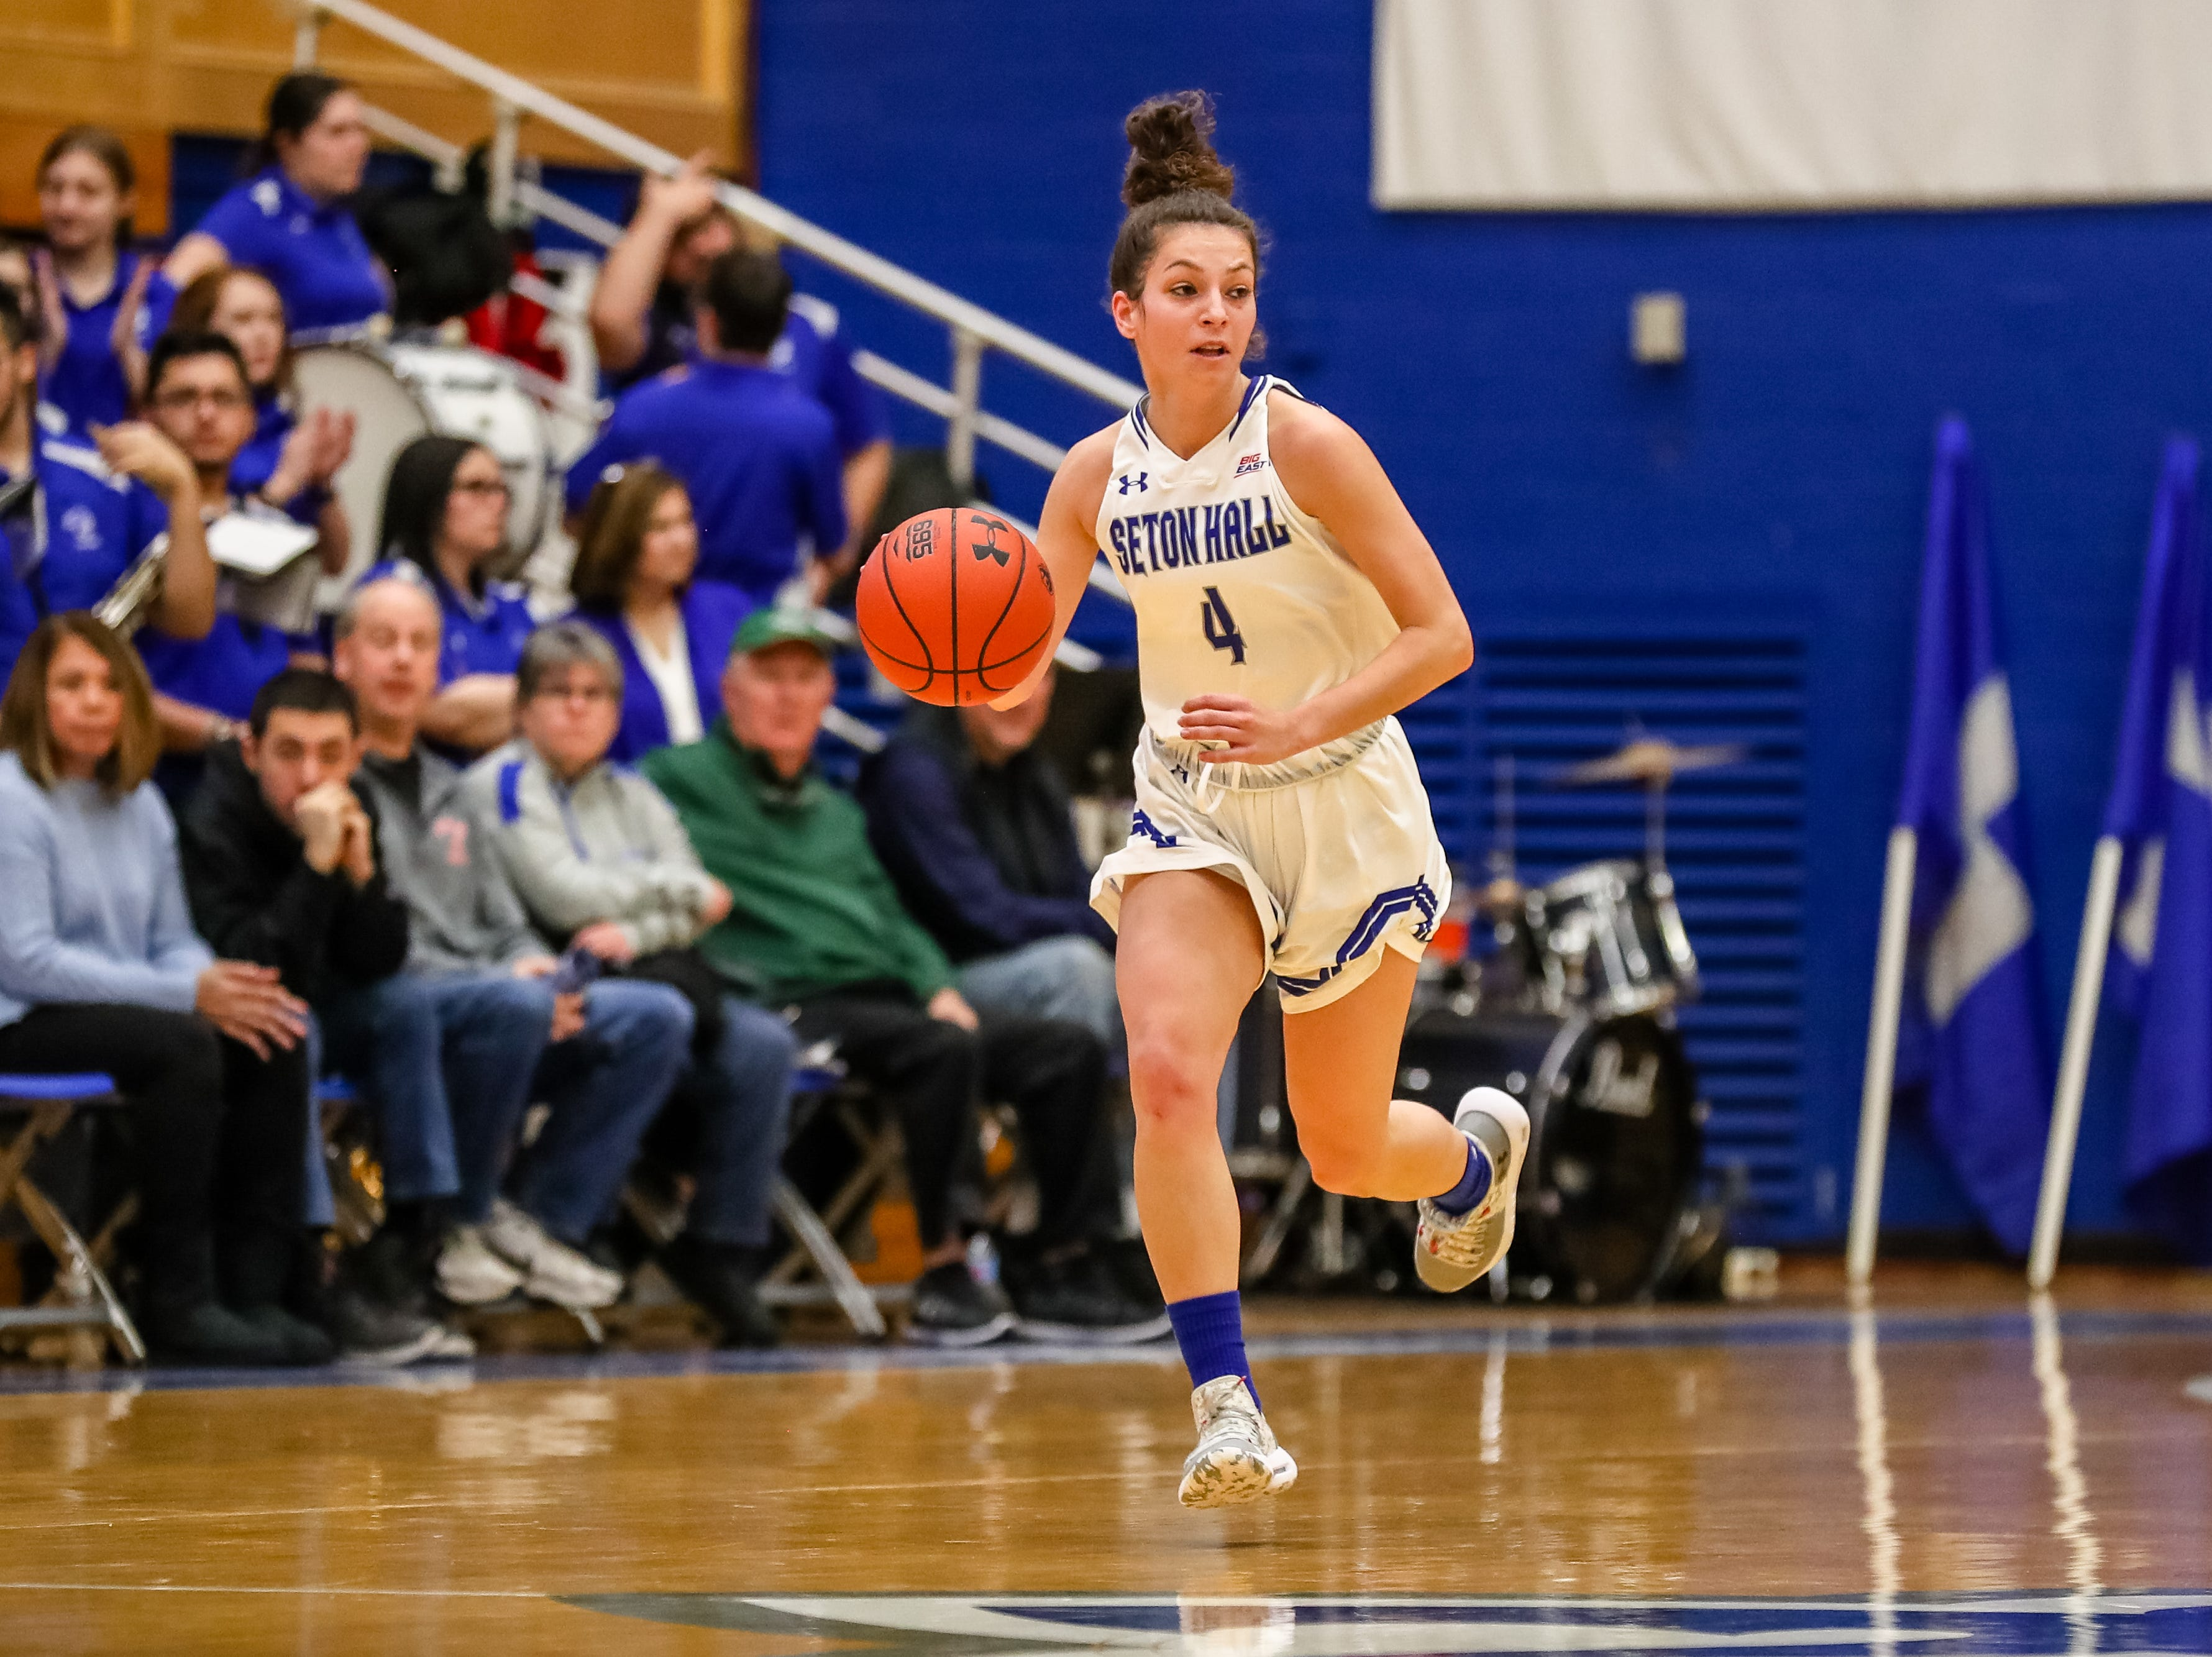 Kaity Healy brings the ball up for Seton Hall women's basketball